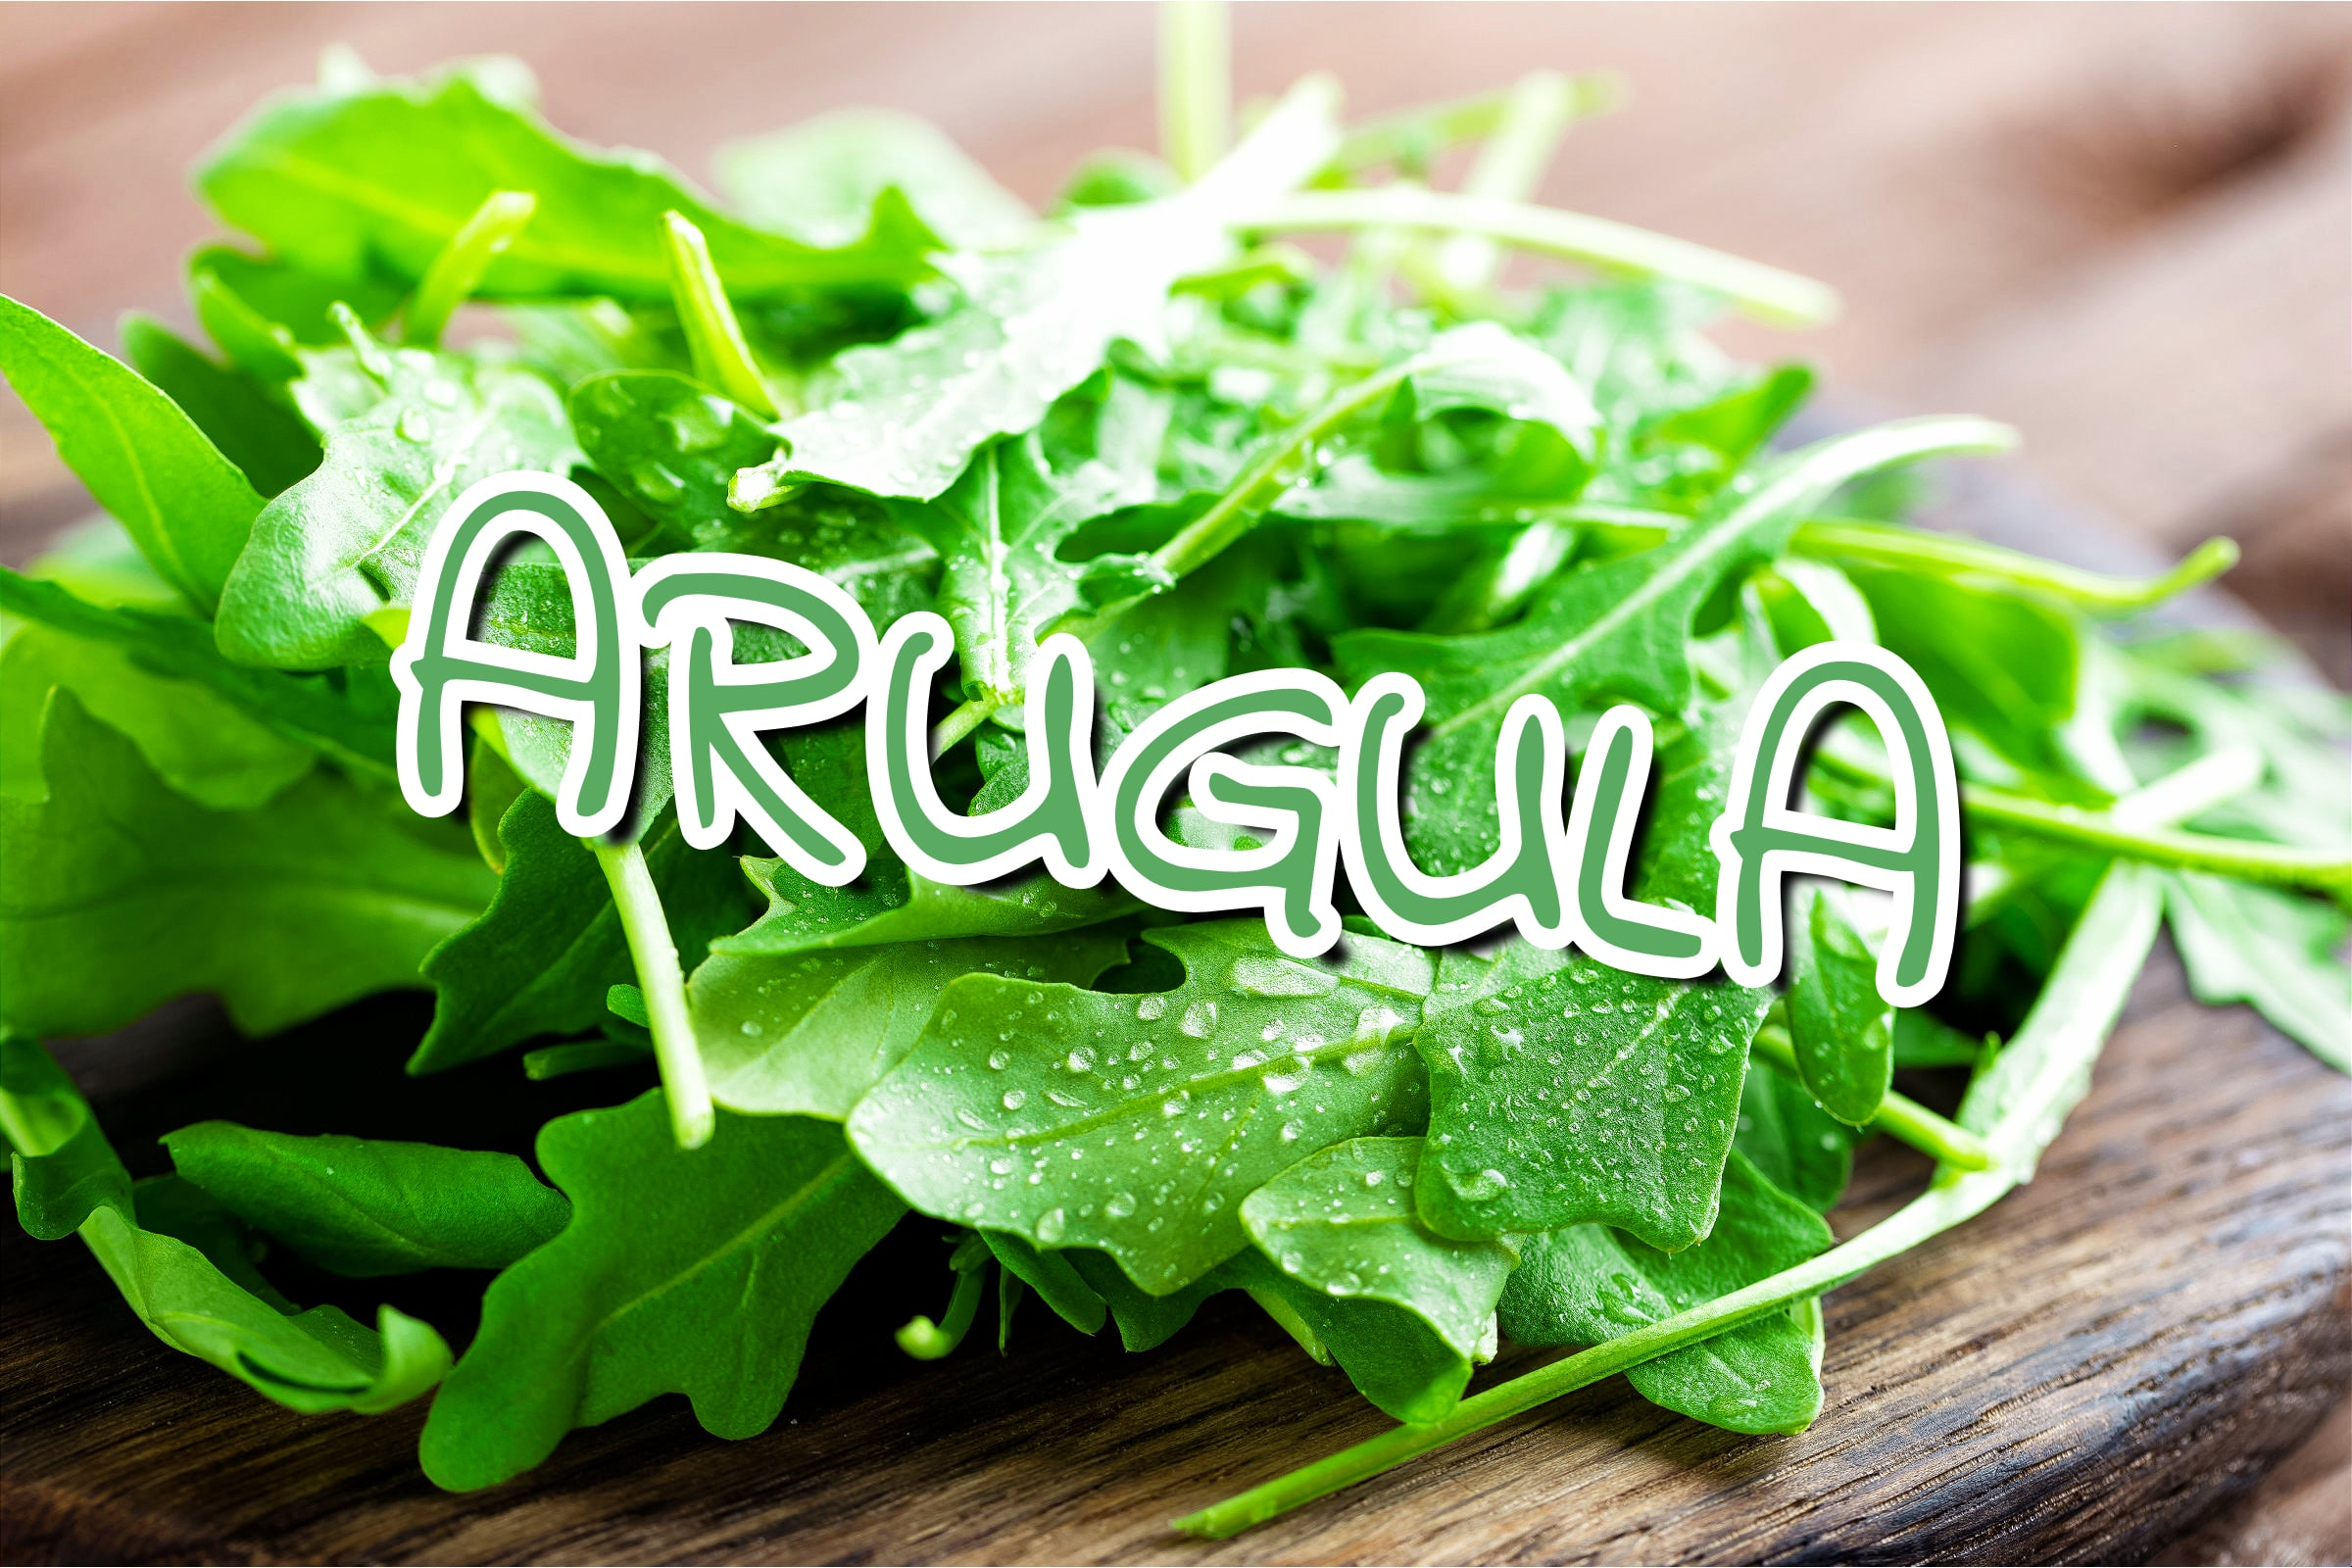 What Is The Arugula Plant?